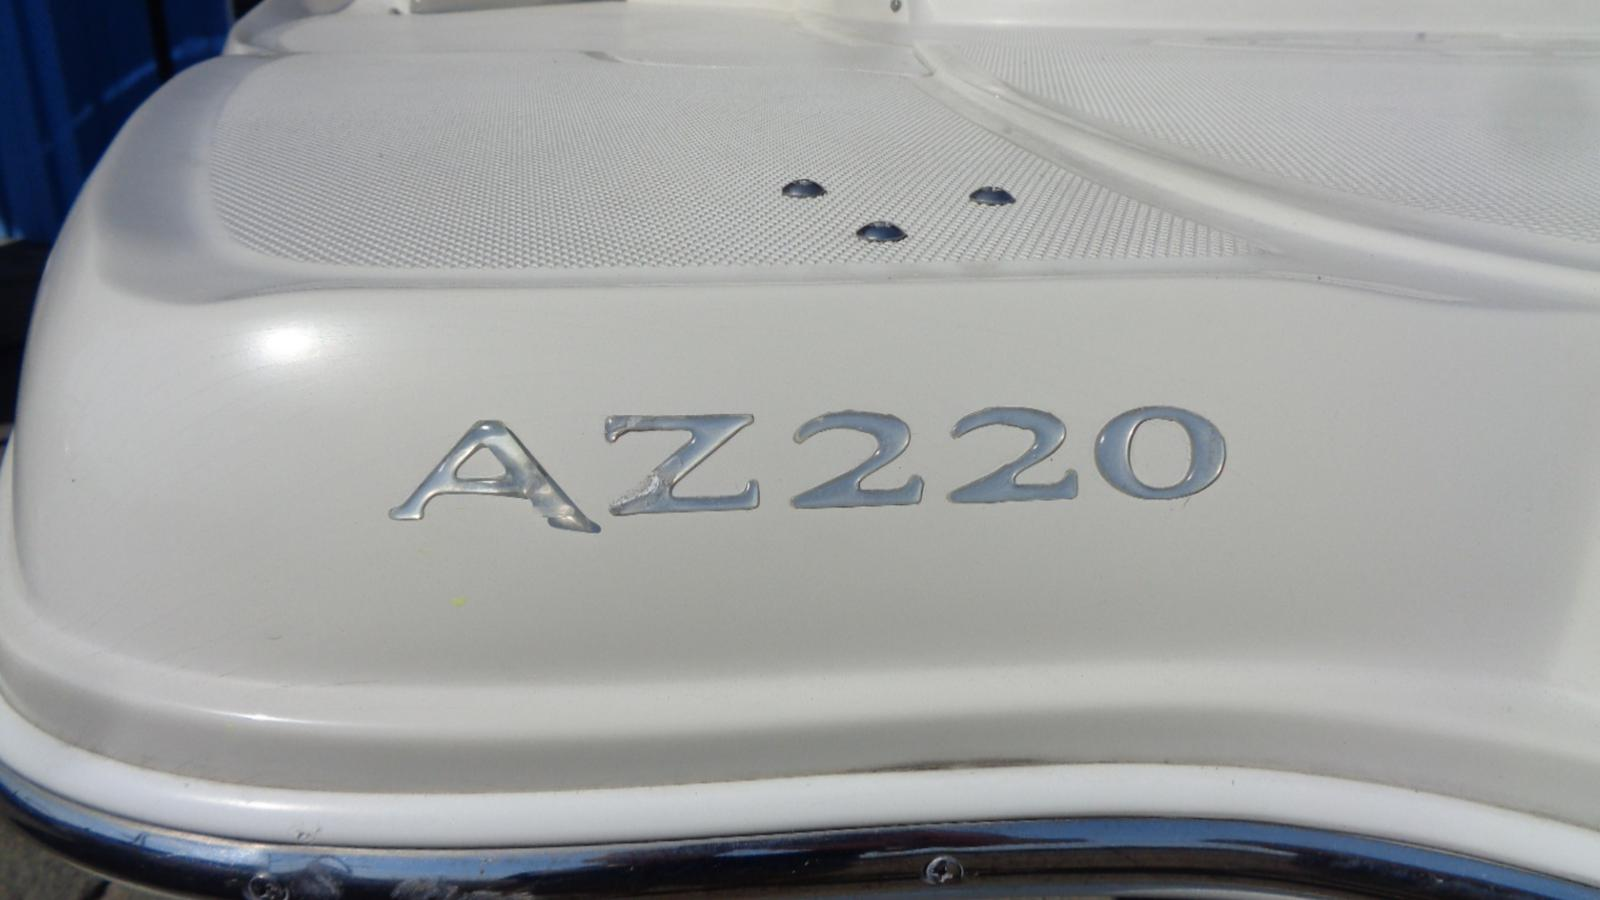 2007 Azure boat for sale, model of the boat is AZ 220 & Image # 14 of 15